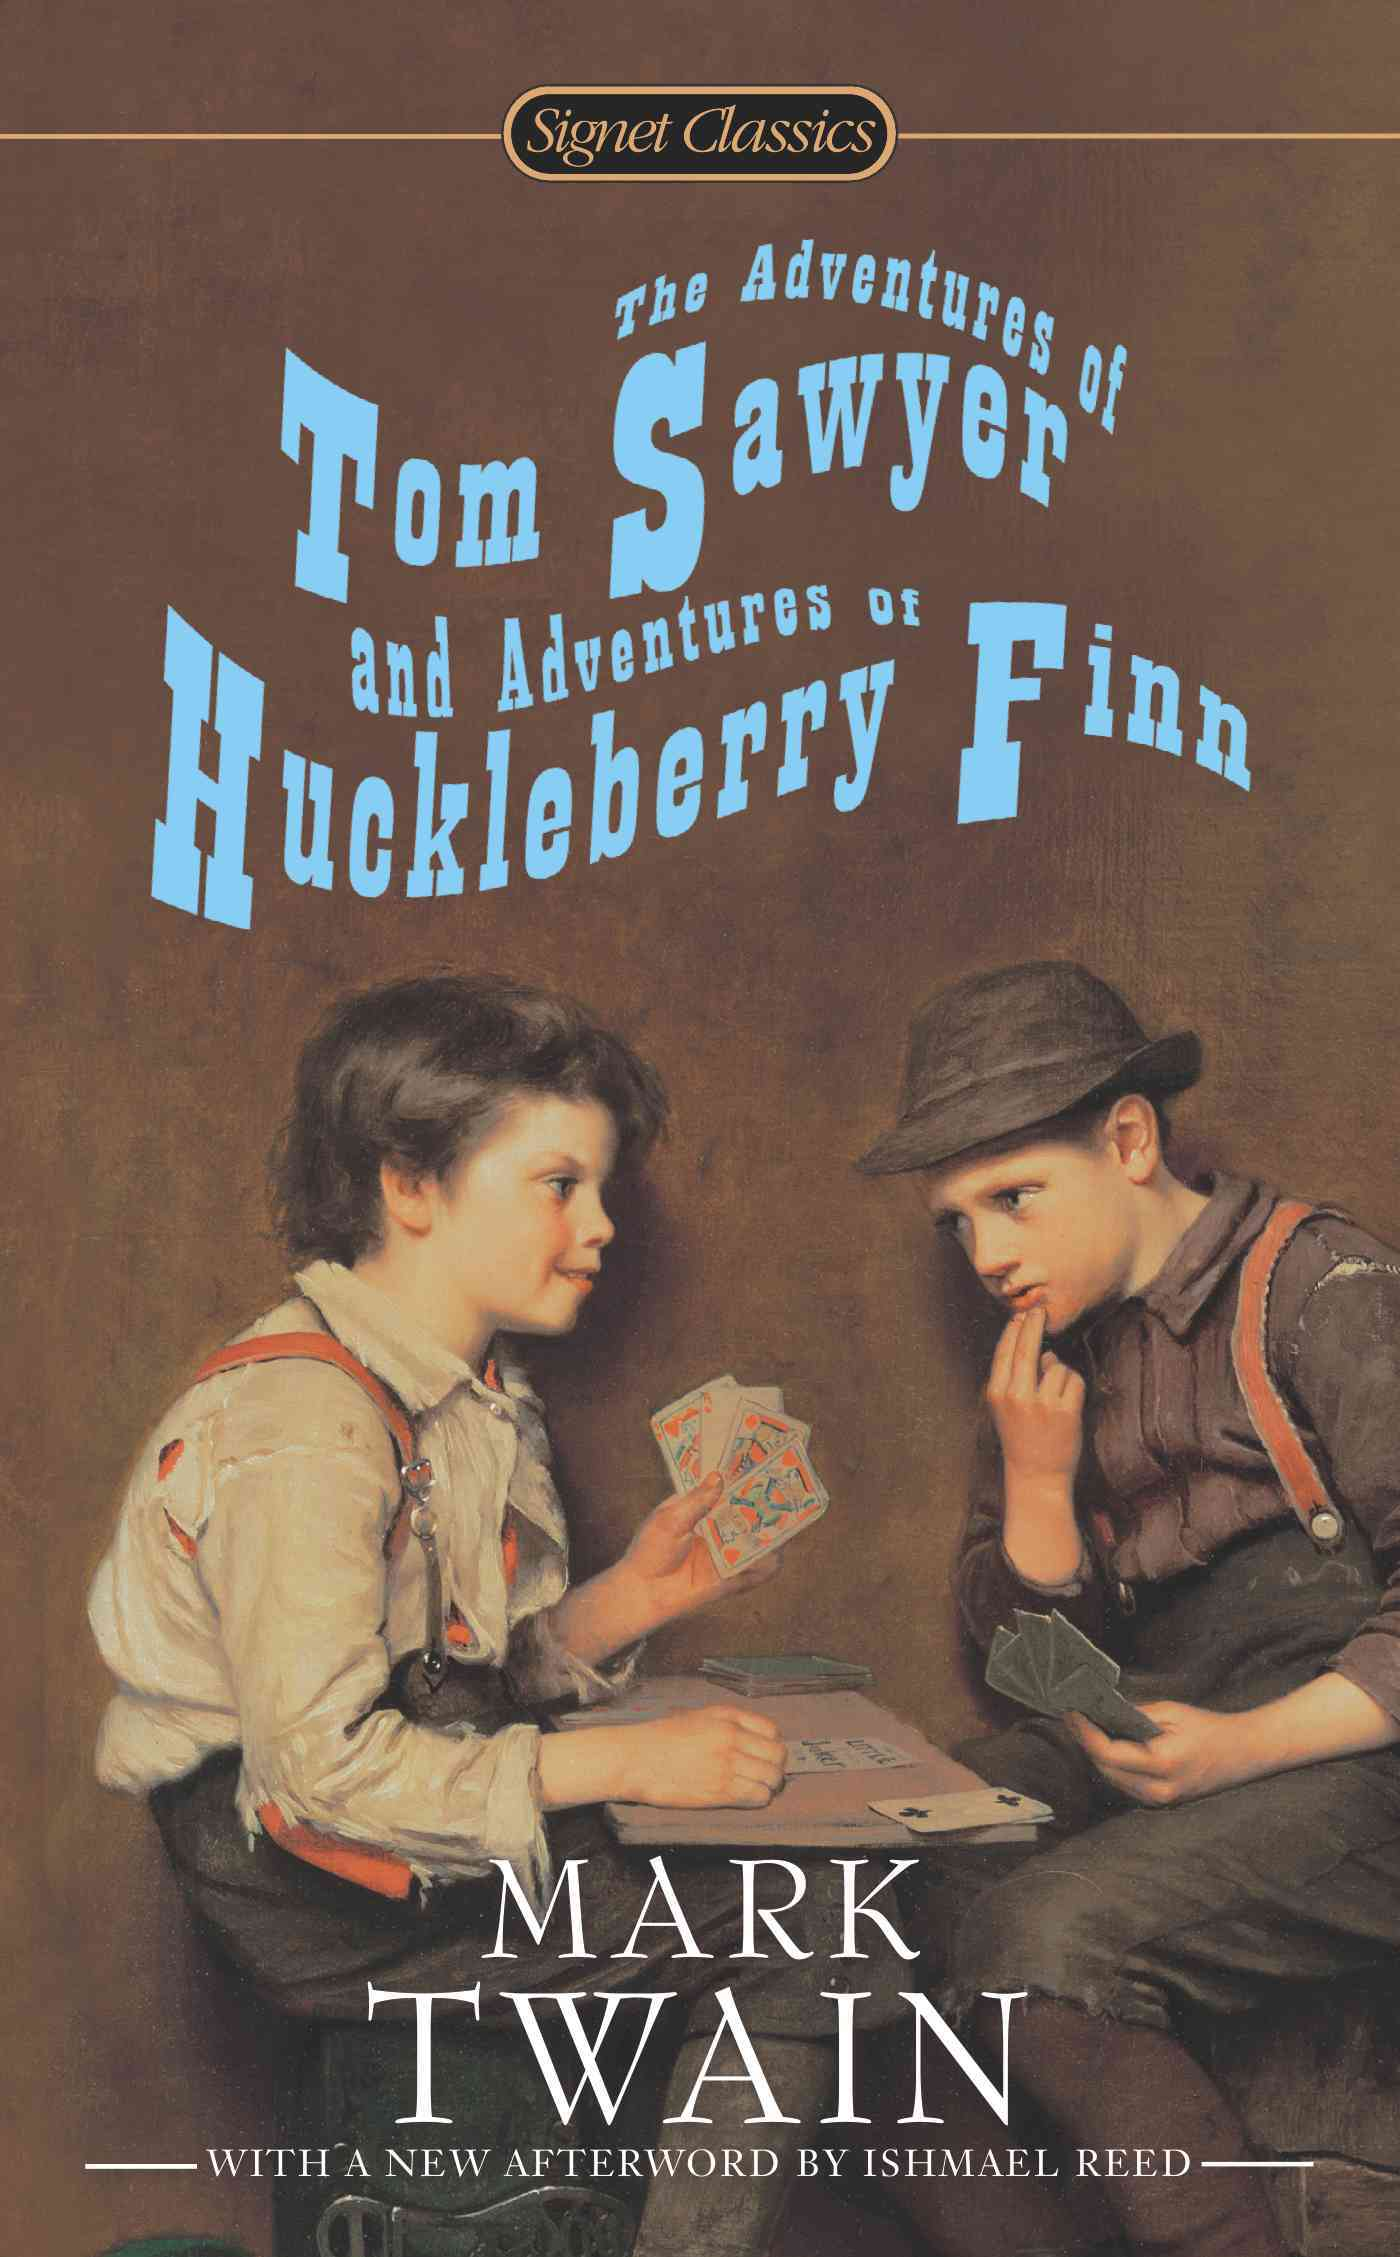 The Adventures of Tom Sawyer and Adventures of Huckleberry Finn By Twain, Mark/ Fisher Fishkin, Shelley (INT)